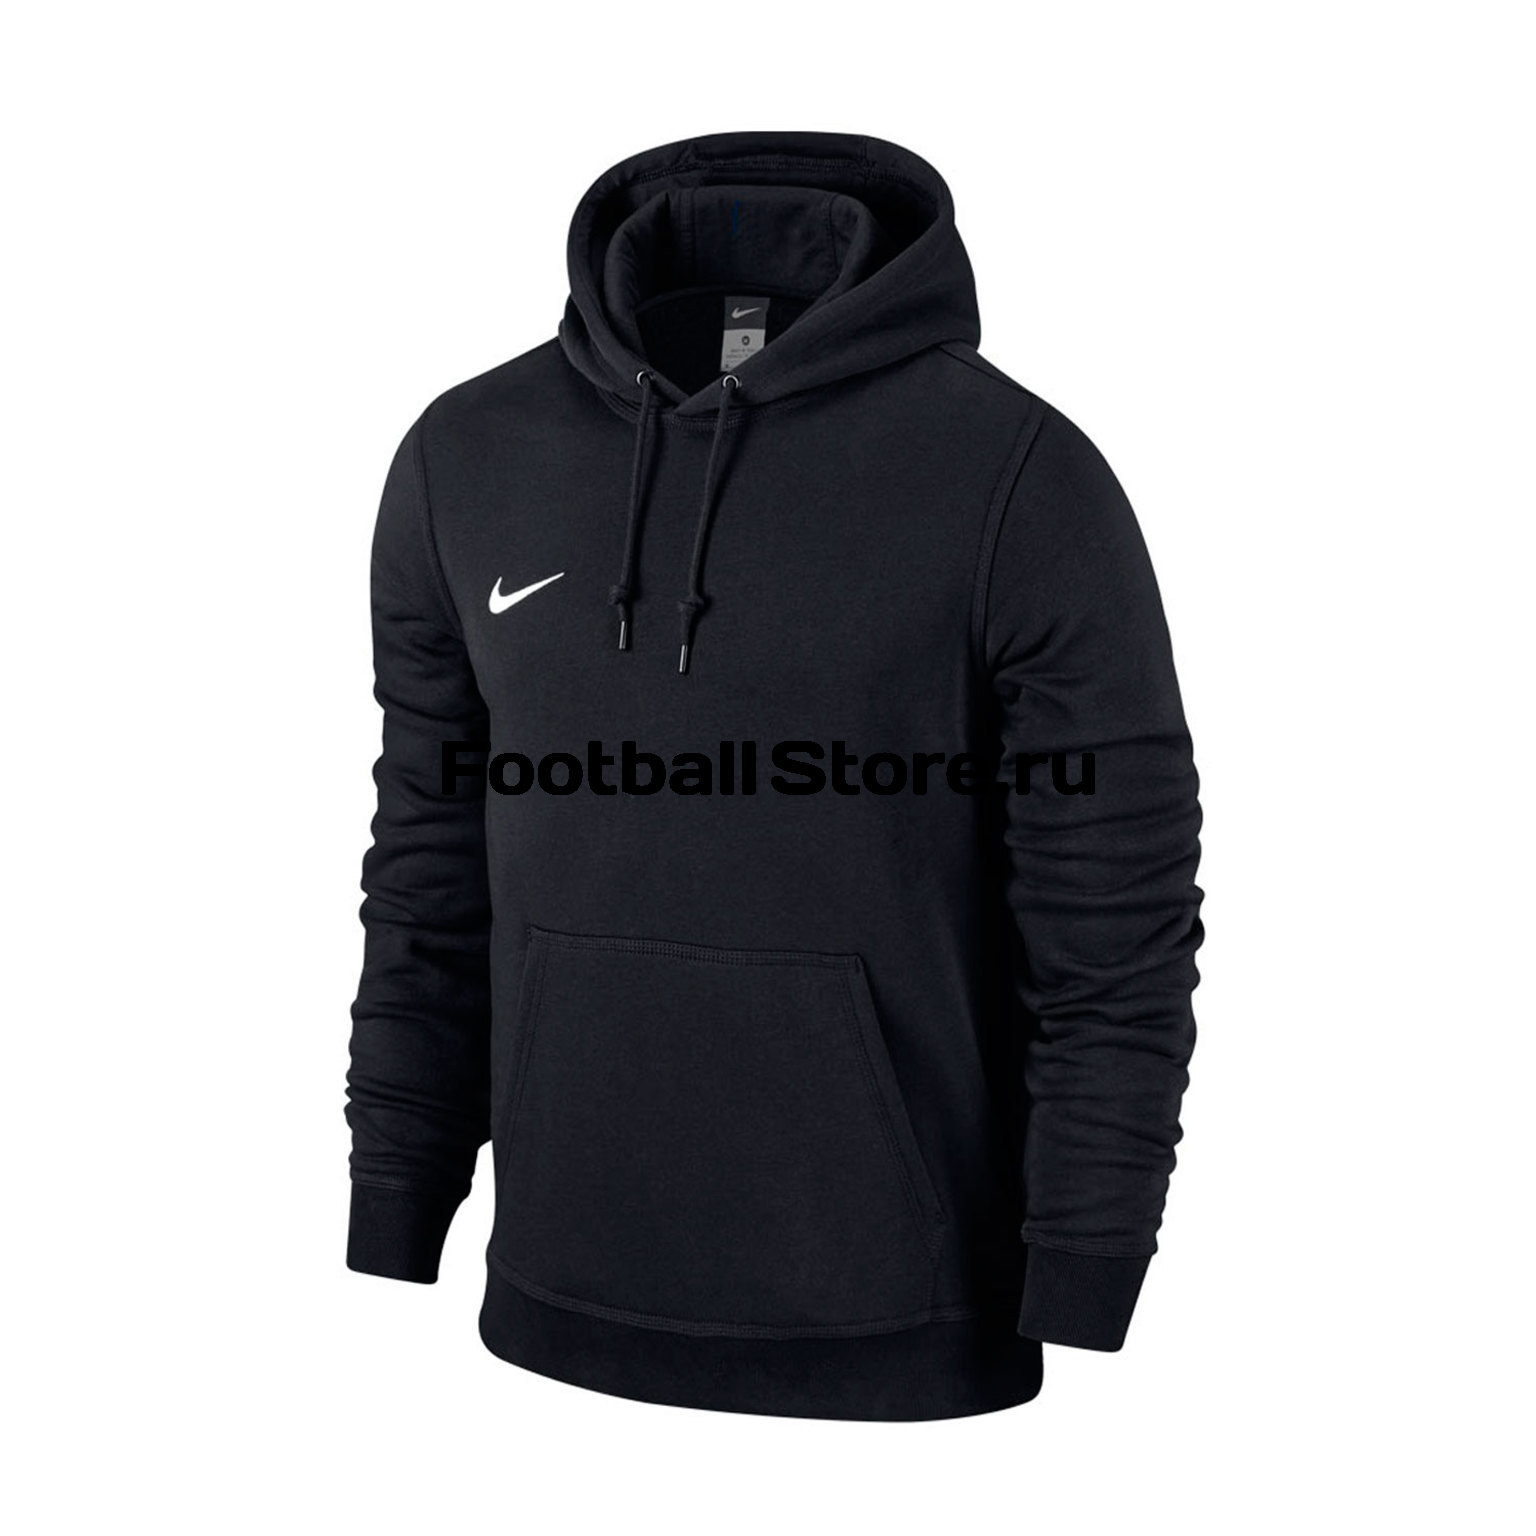 Толстовка Nike Team Club Hoody 658498-010 цены